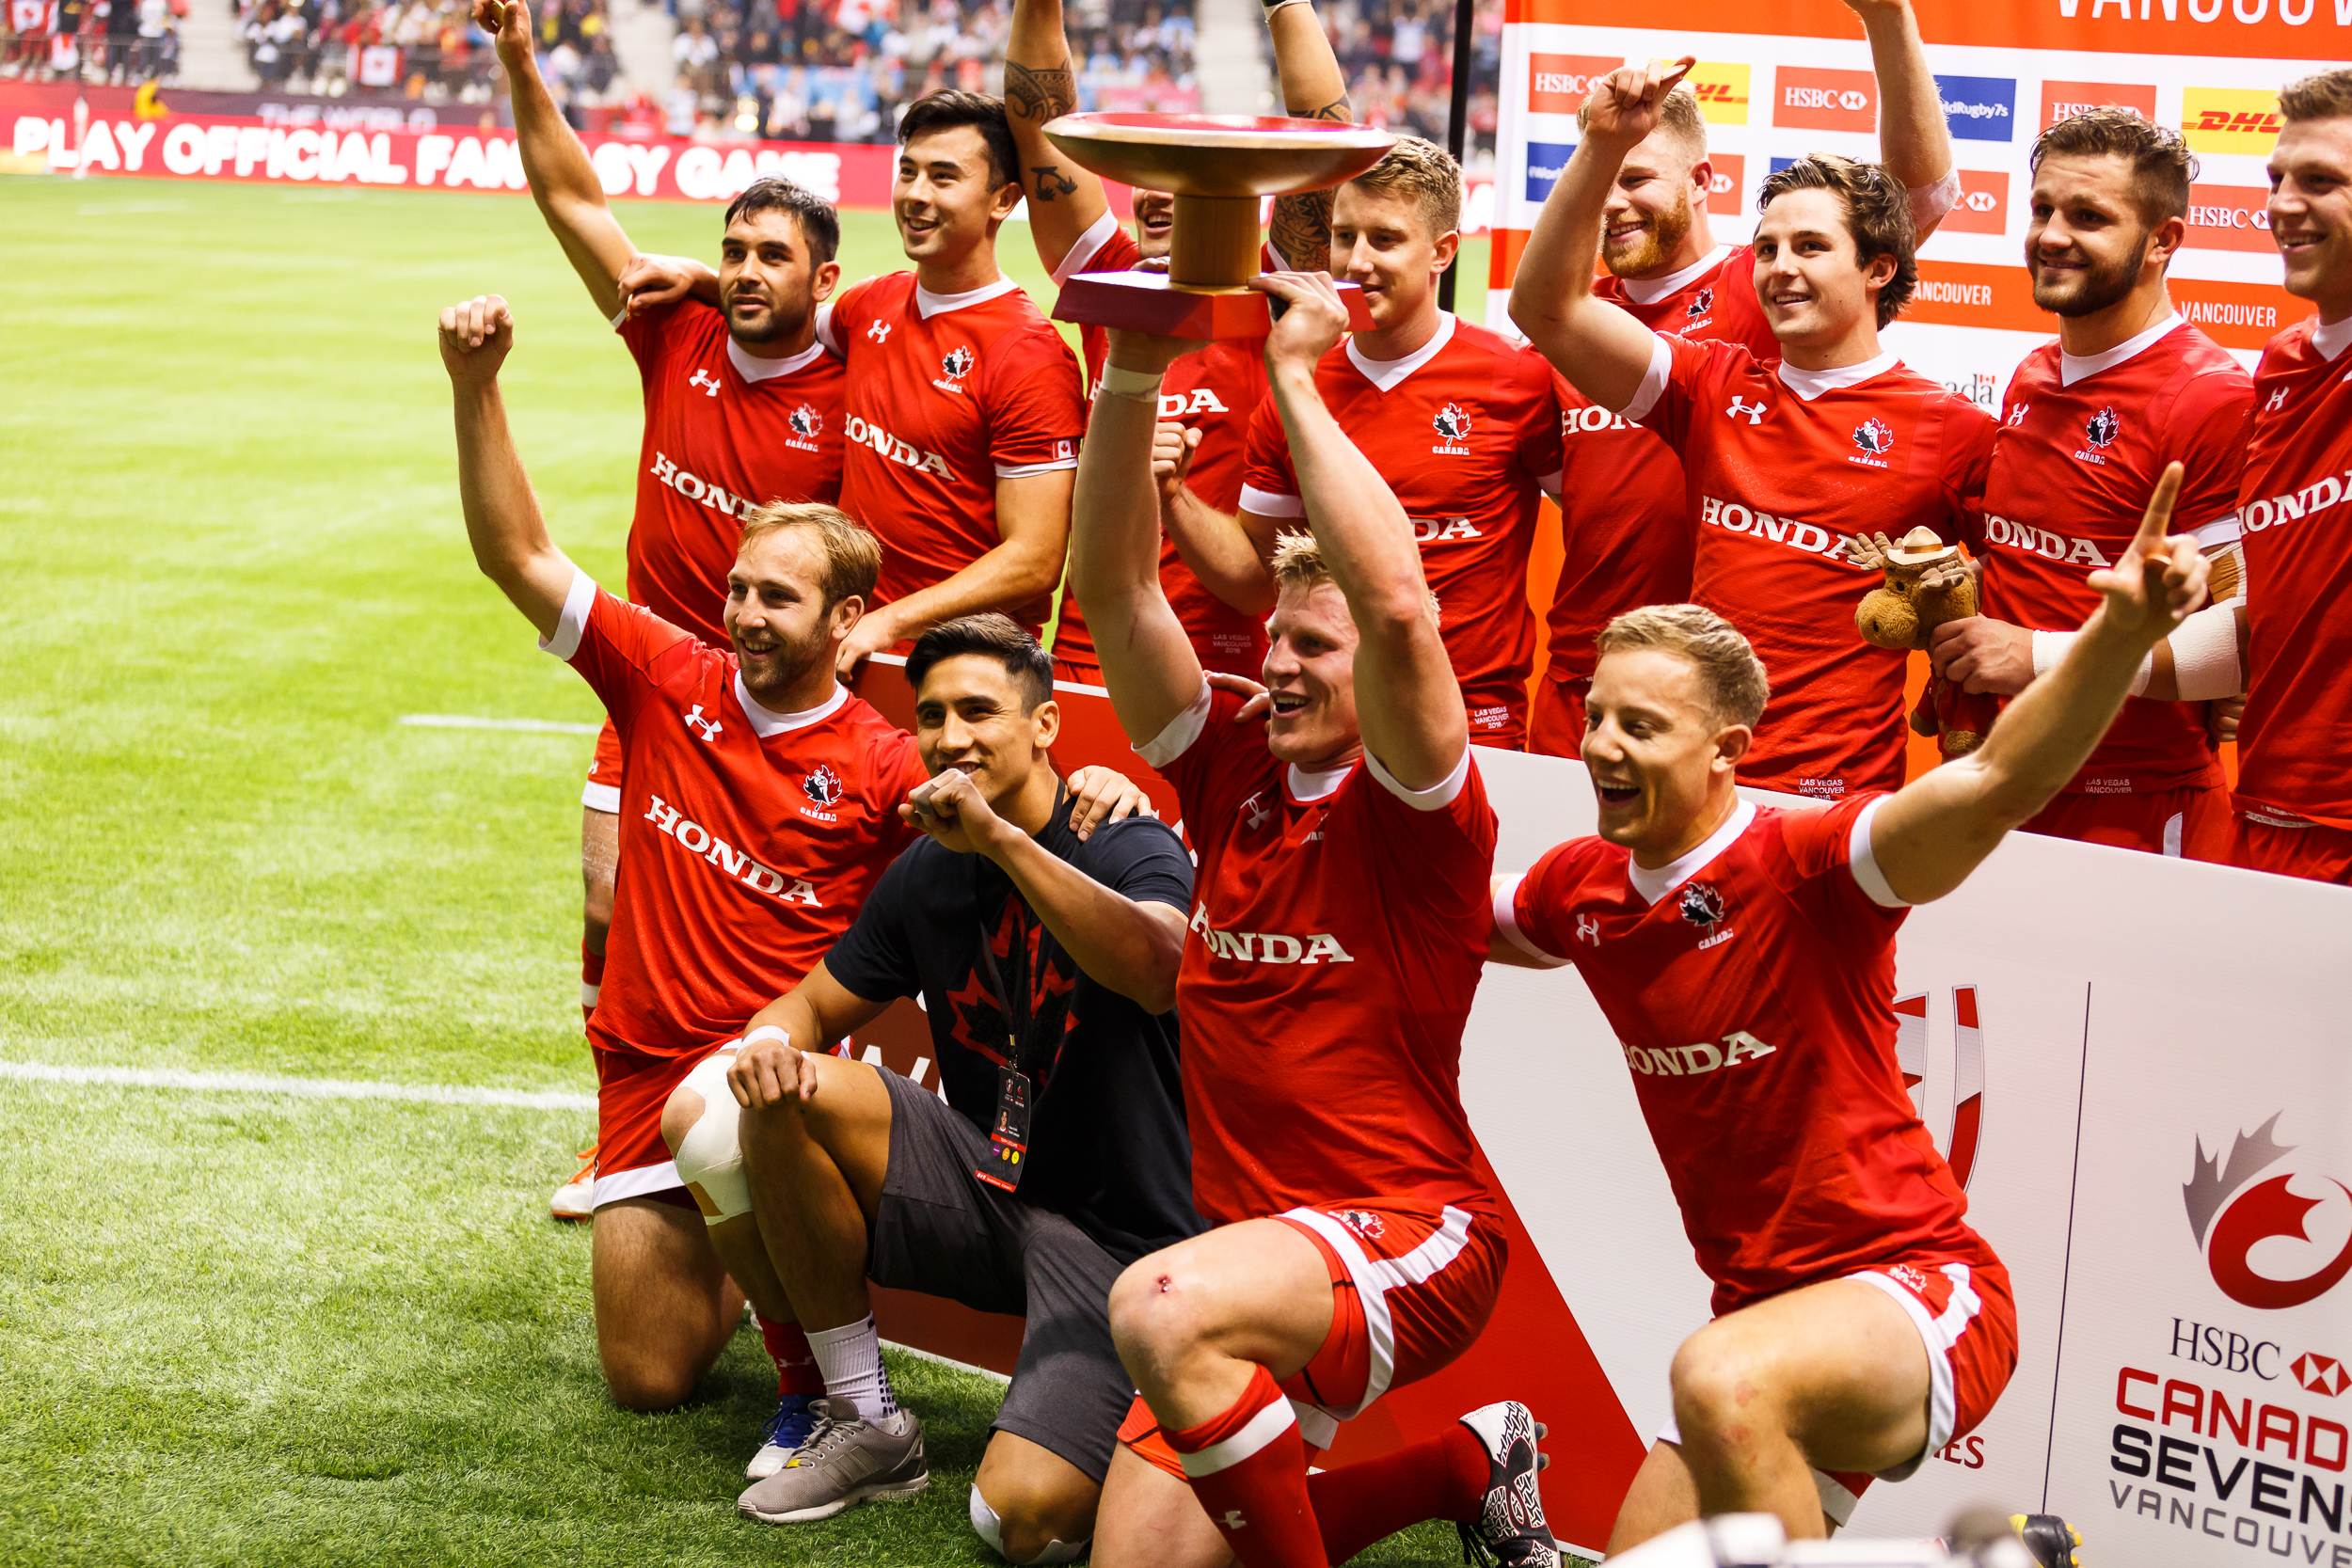 Canada-Rugby-Sevens-photo-50.jpg